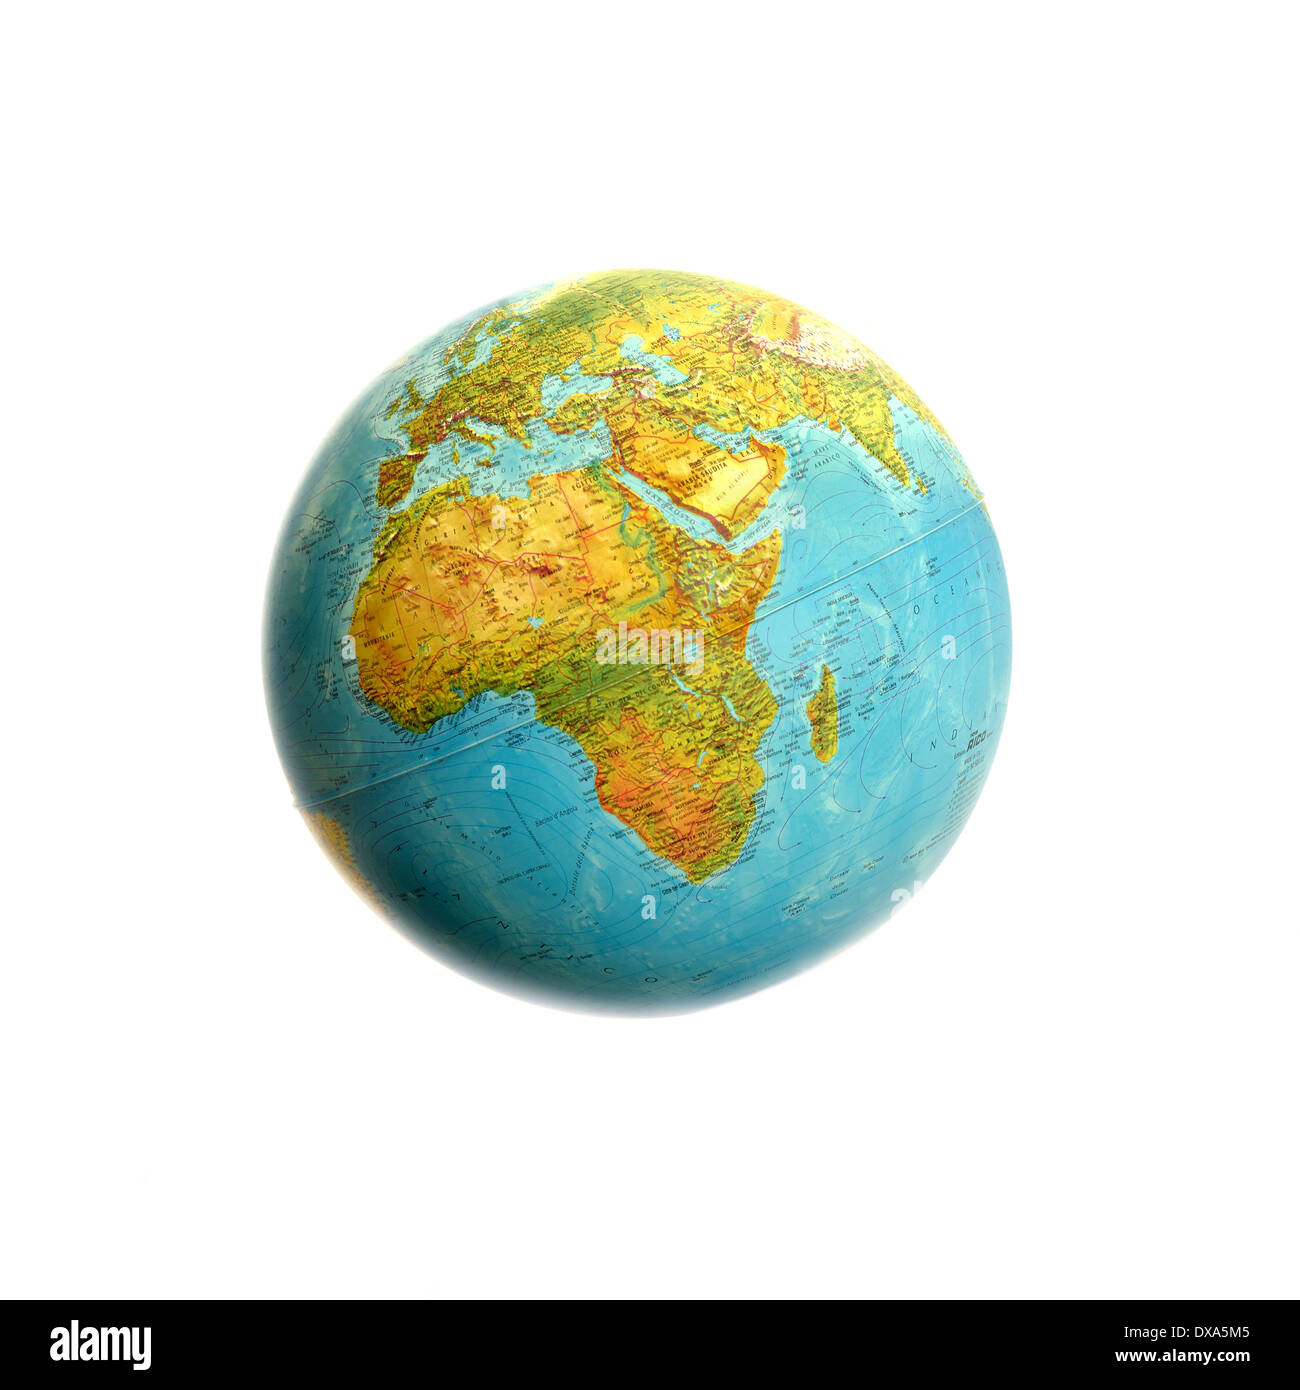 view of world map globe with background white Stock Photo